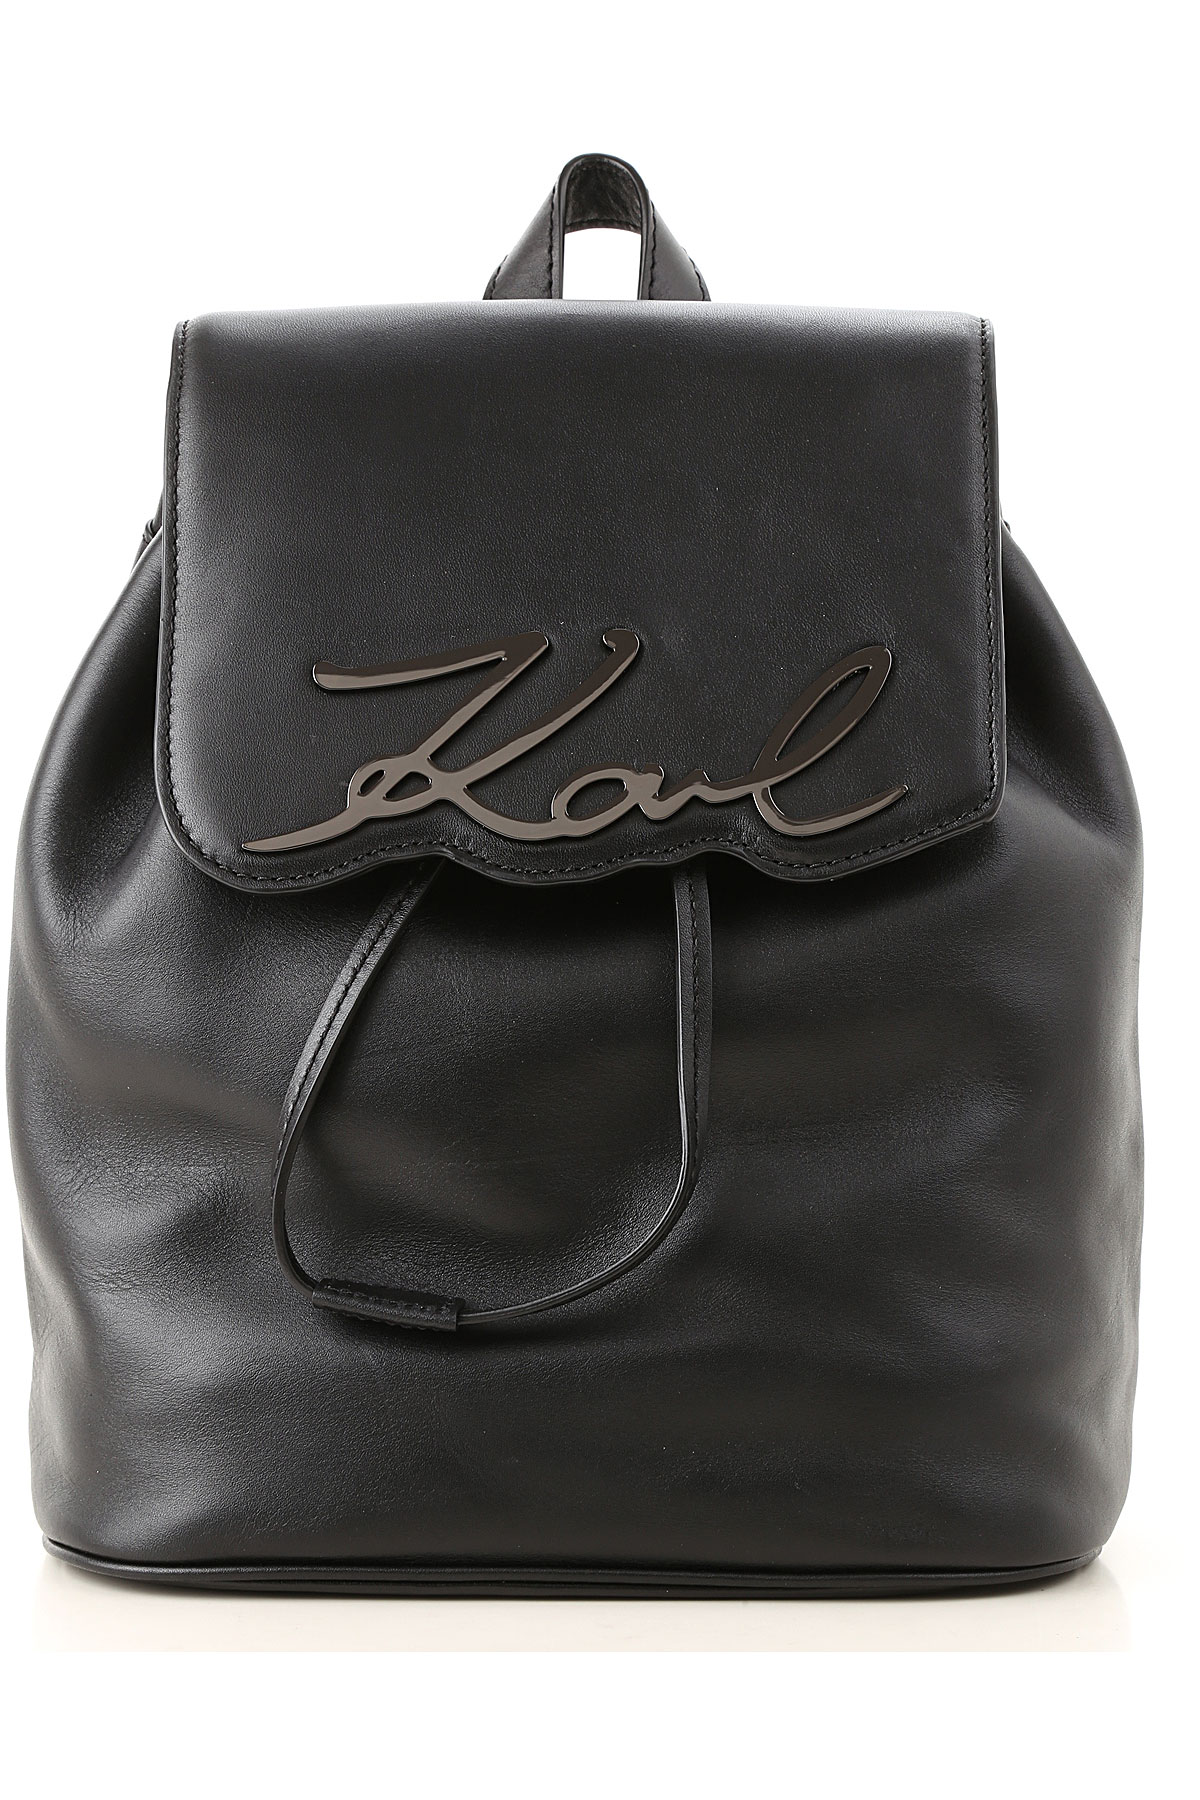 Image of Karl Lagerfeld Backpack for Women, Black, Leather, 2017